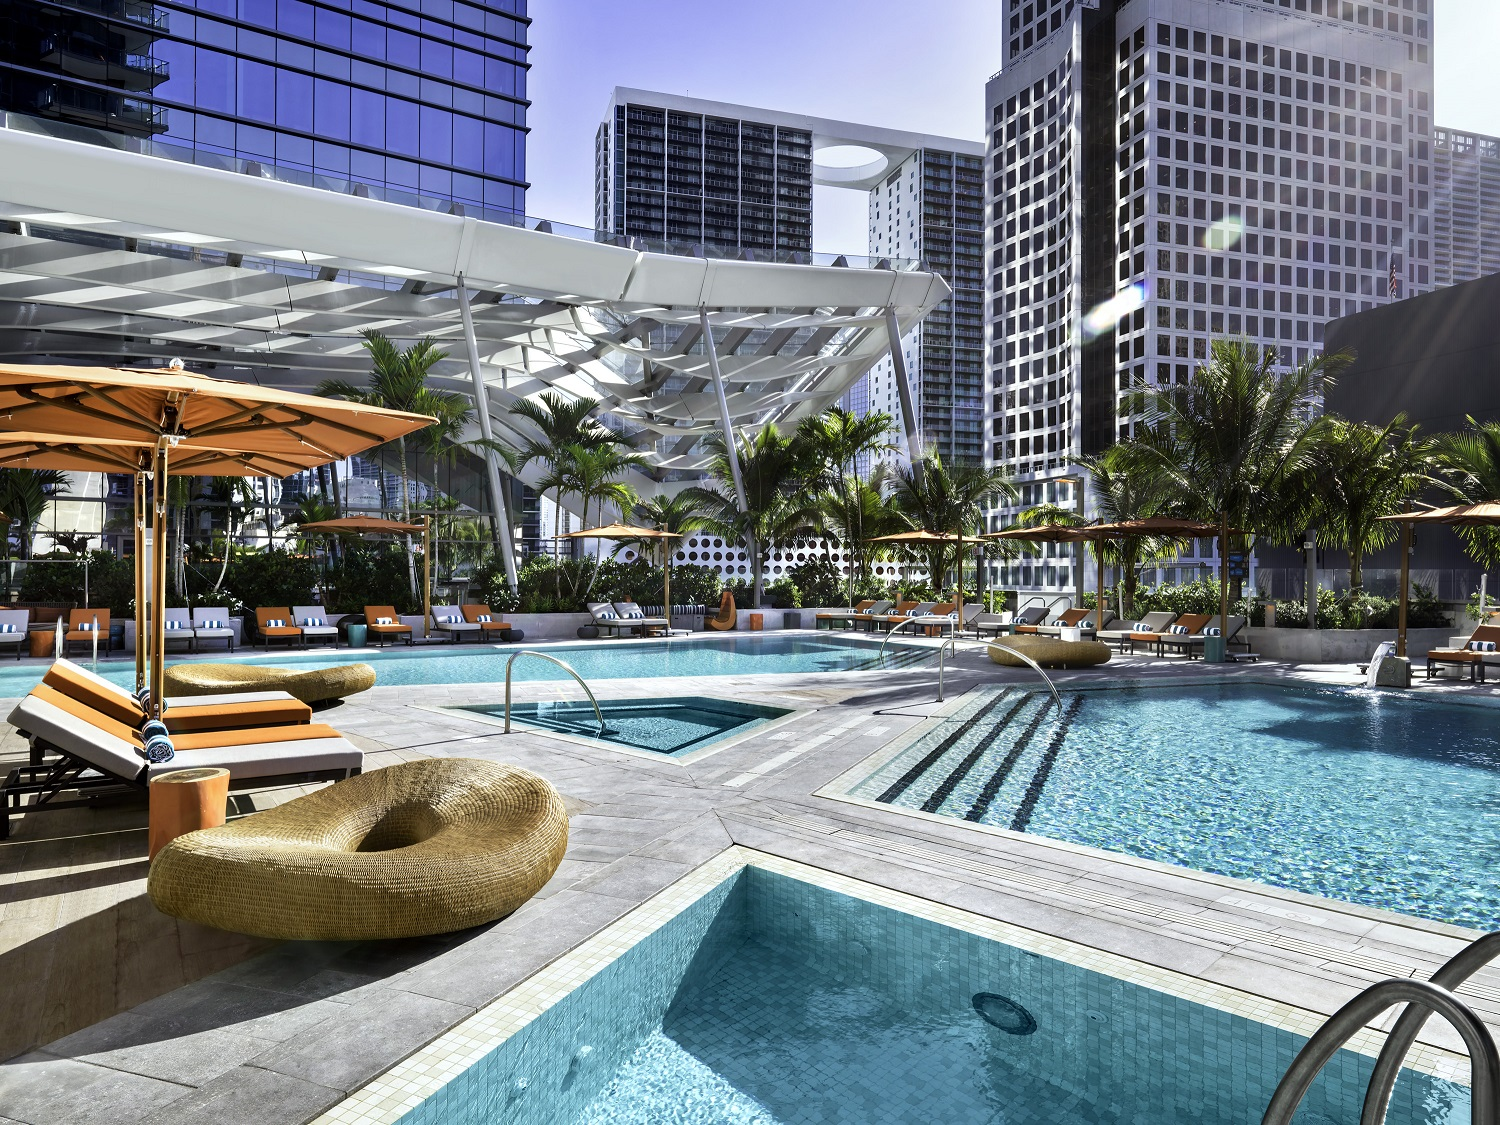 The pool deck at East, Miami in Brickell City Centre